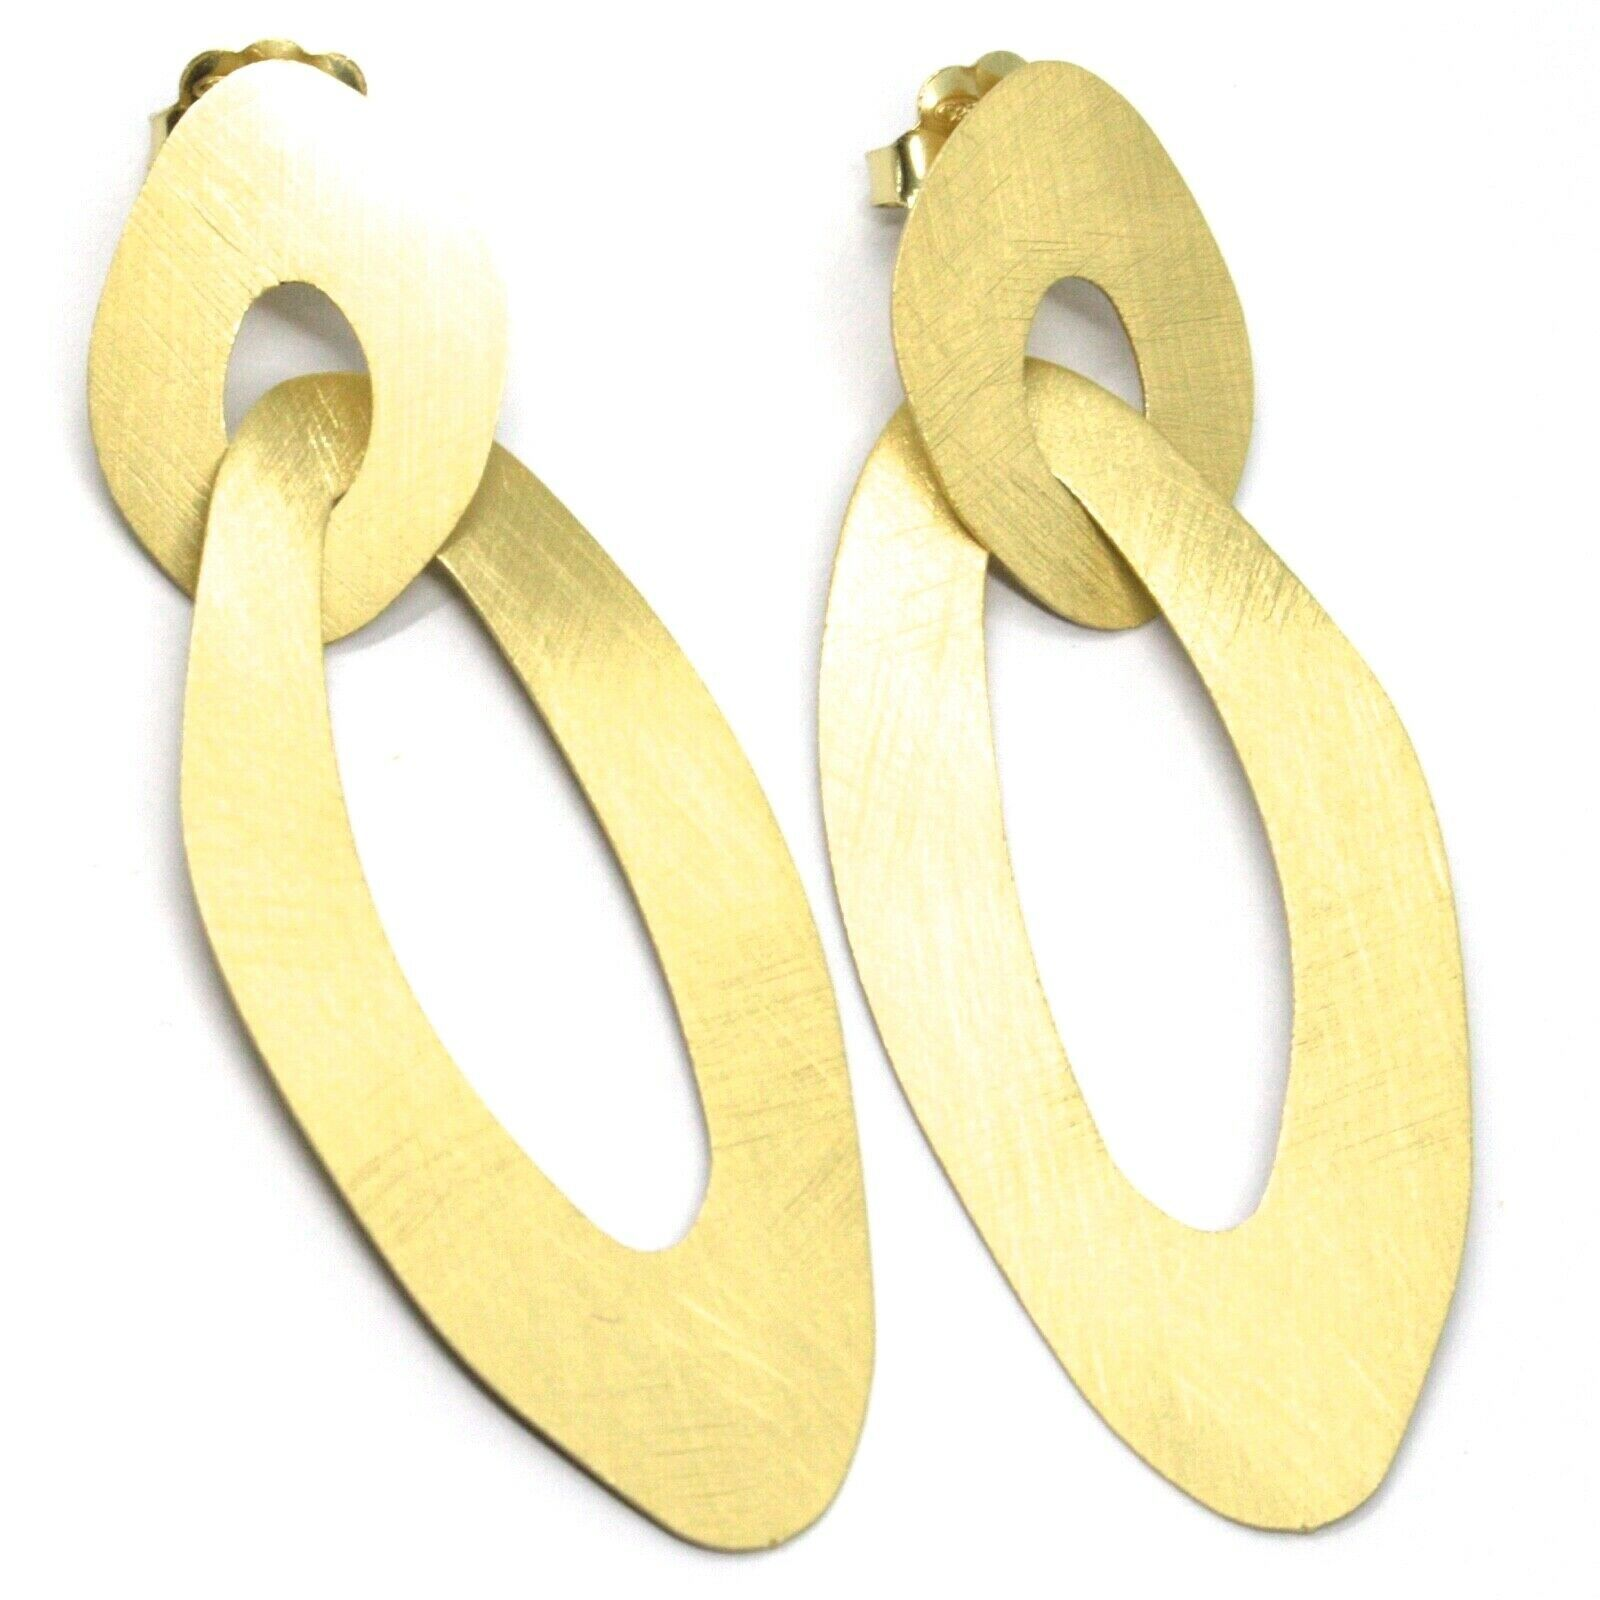 925 STERLING SILVER BIG PENDANT EARRINGS 7cm, FLAT OVAL, YELLOW, SATIN FINISH